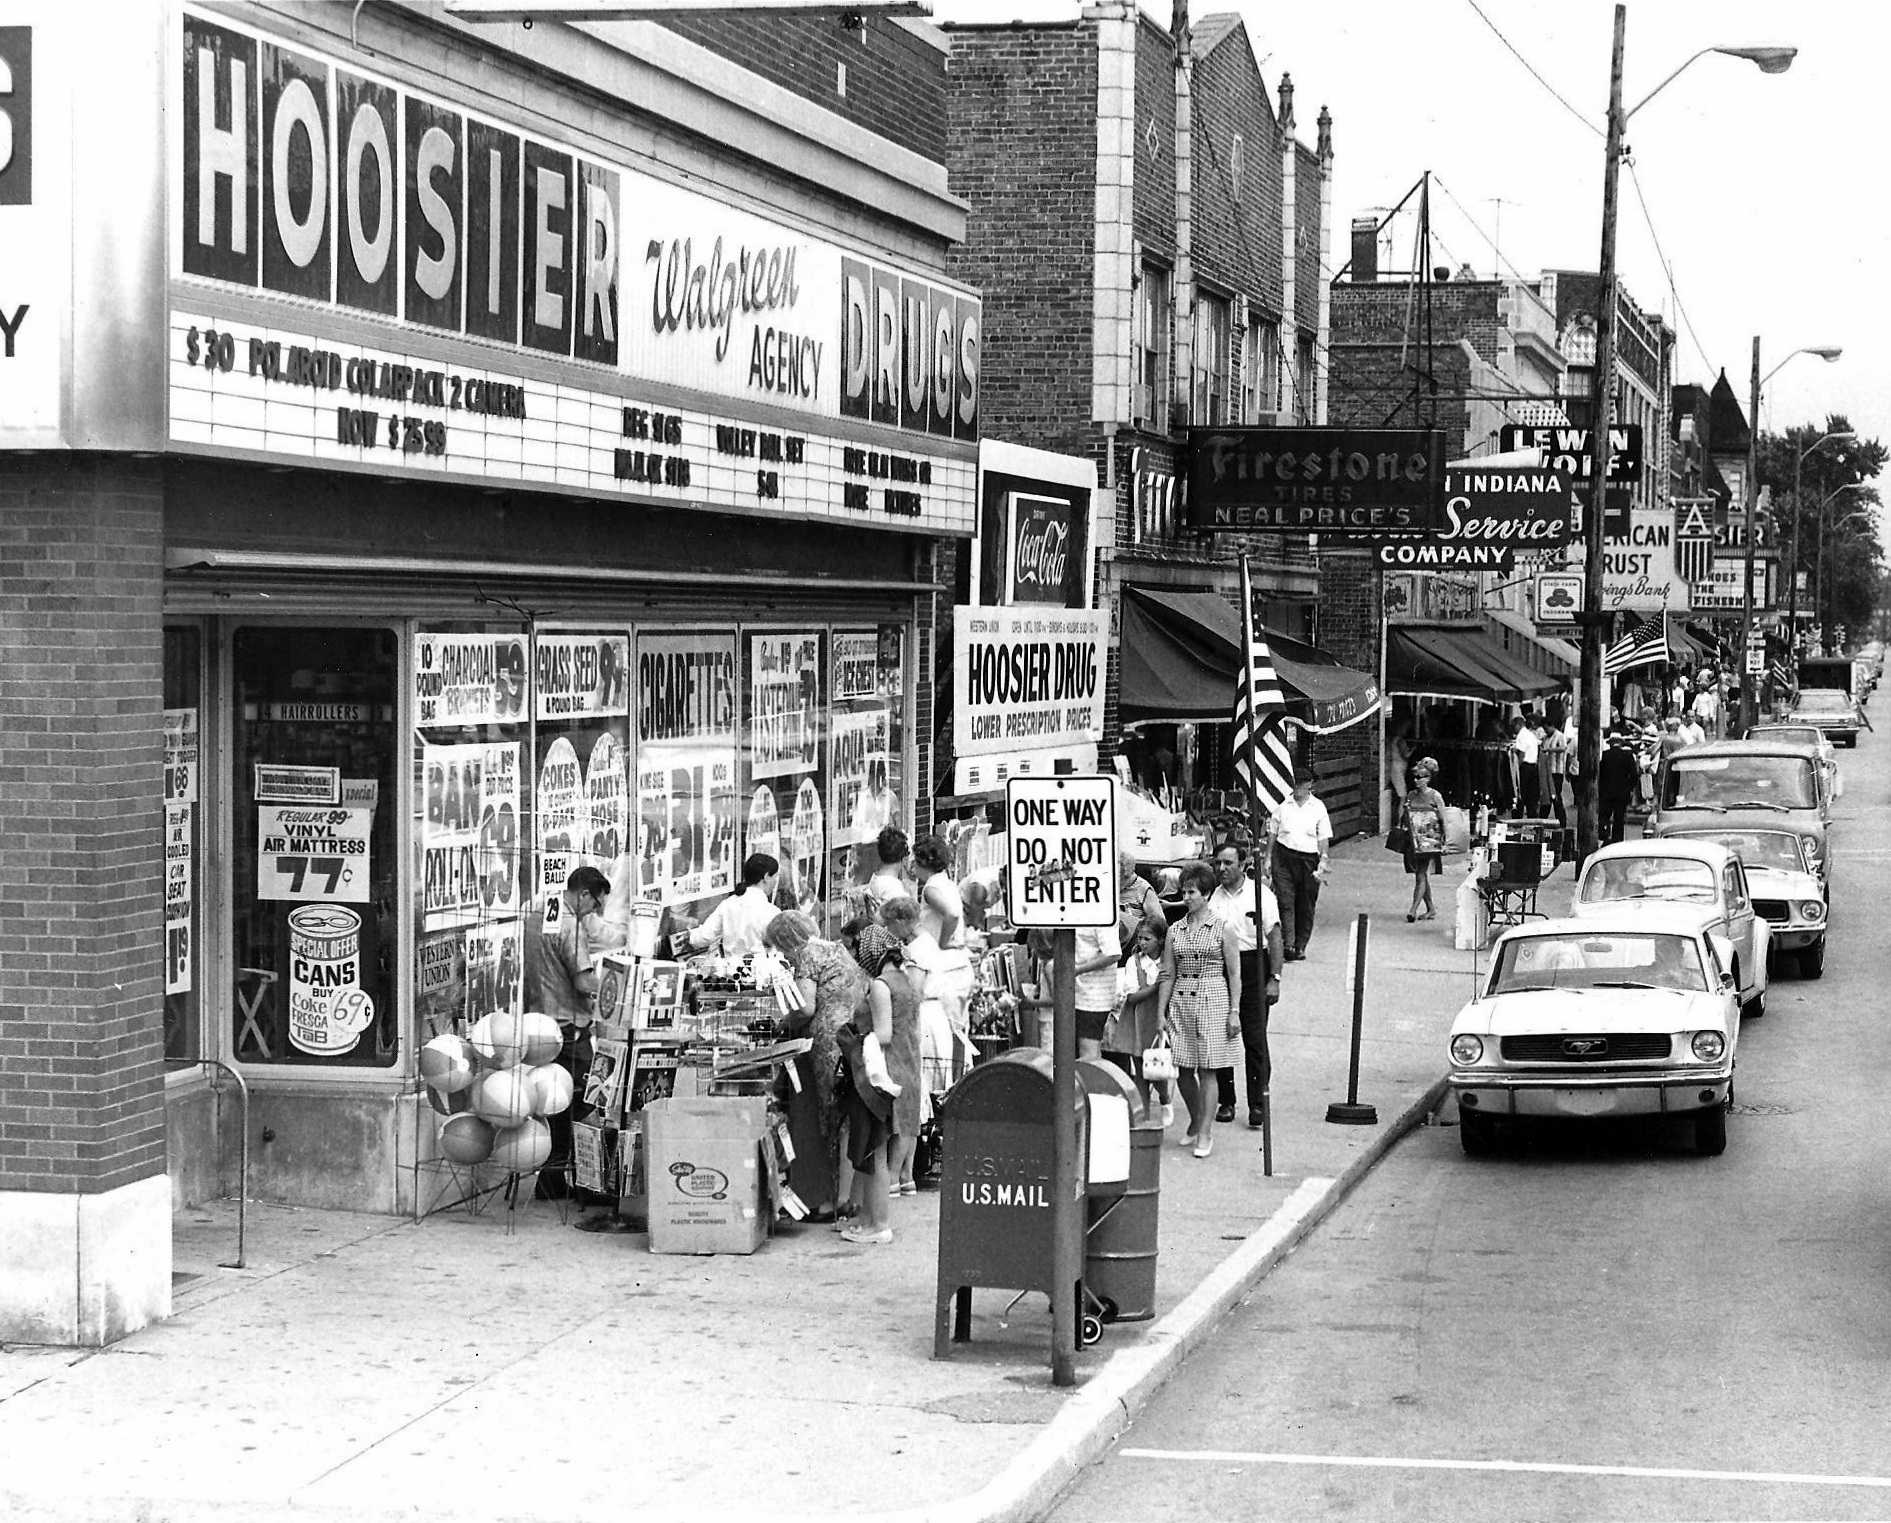 1301 119th Street is the home of CVS Pharmacy today, after being Fagen Pharmacy in recent years. But before that, it was Hoosier Drugs, and even further back, some can remember it as the National Tea grocery store. This photo is from 1969. (Lovasko Studio photograph)